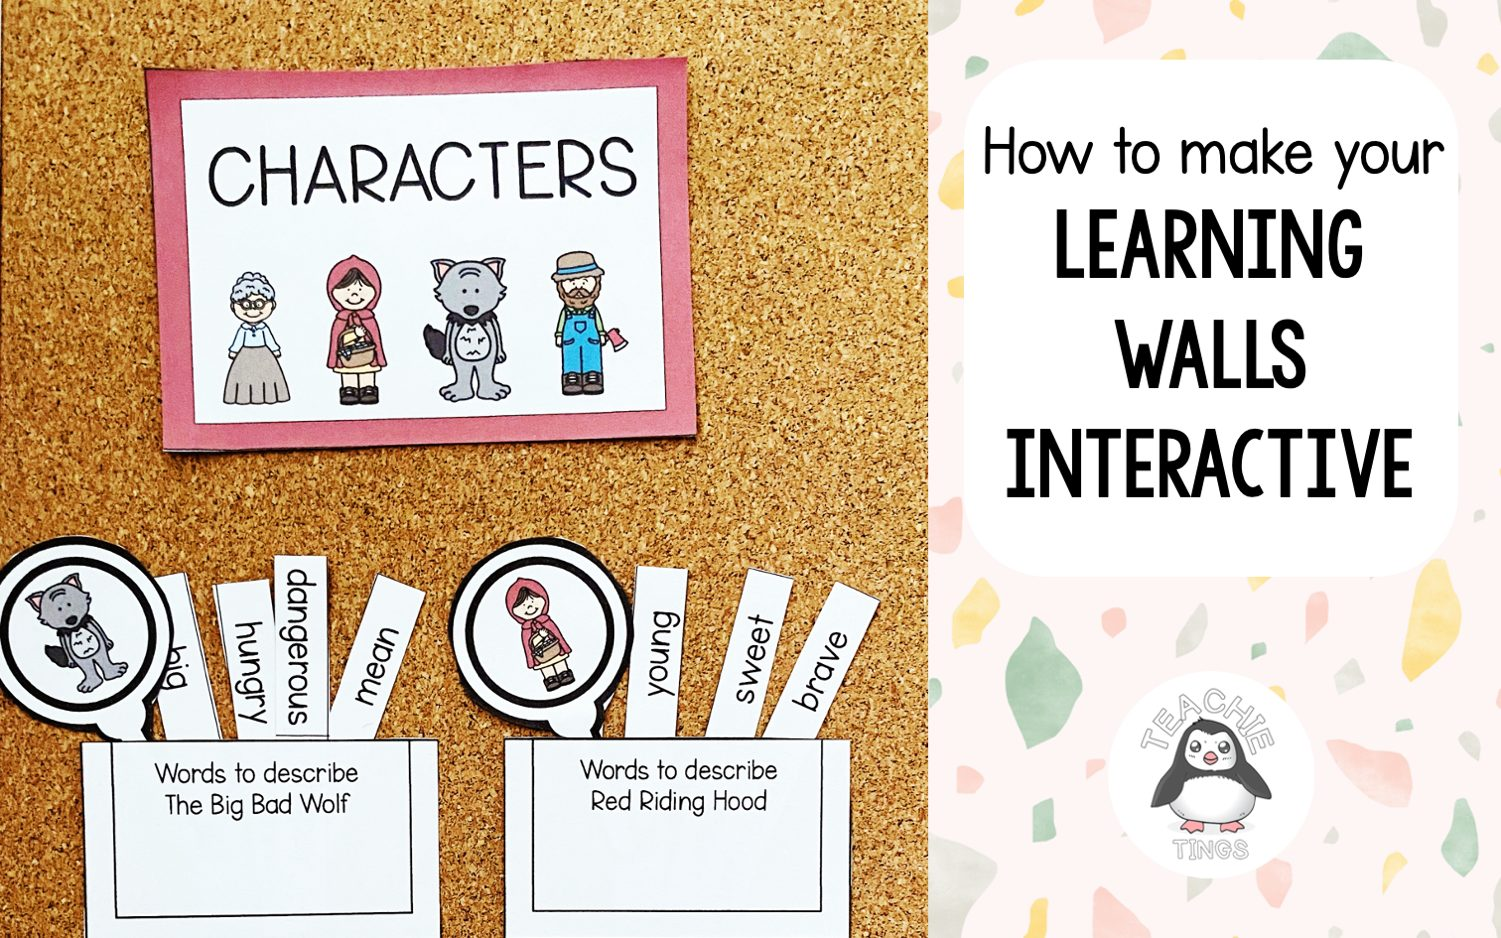 How to make Your Learning Walls interactive